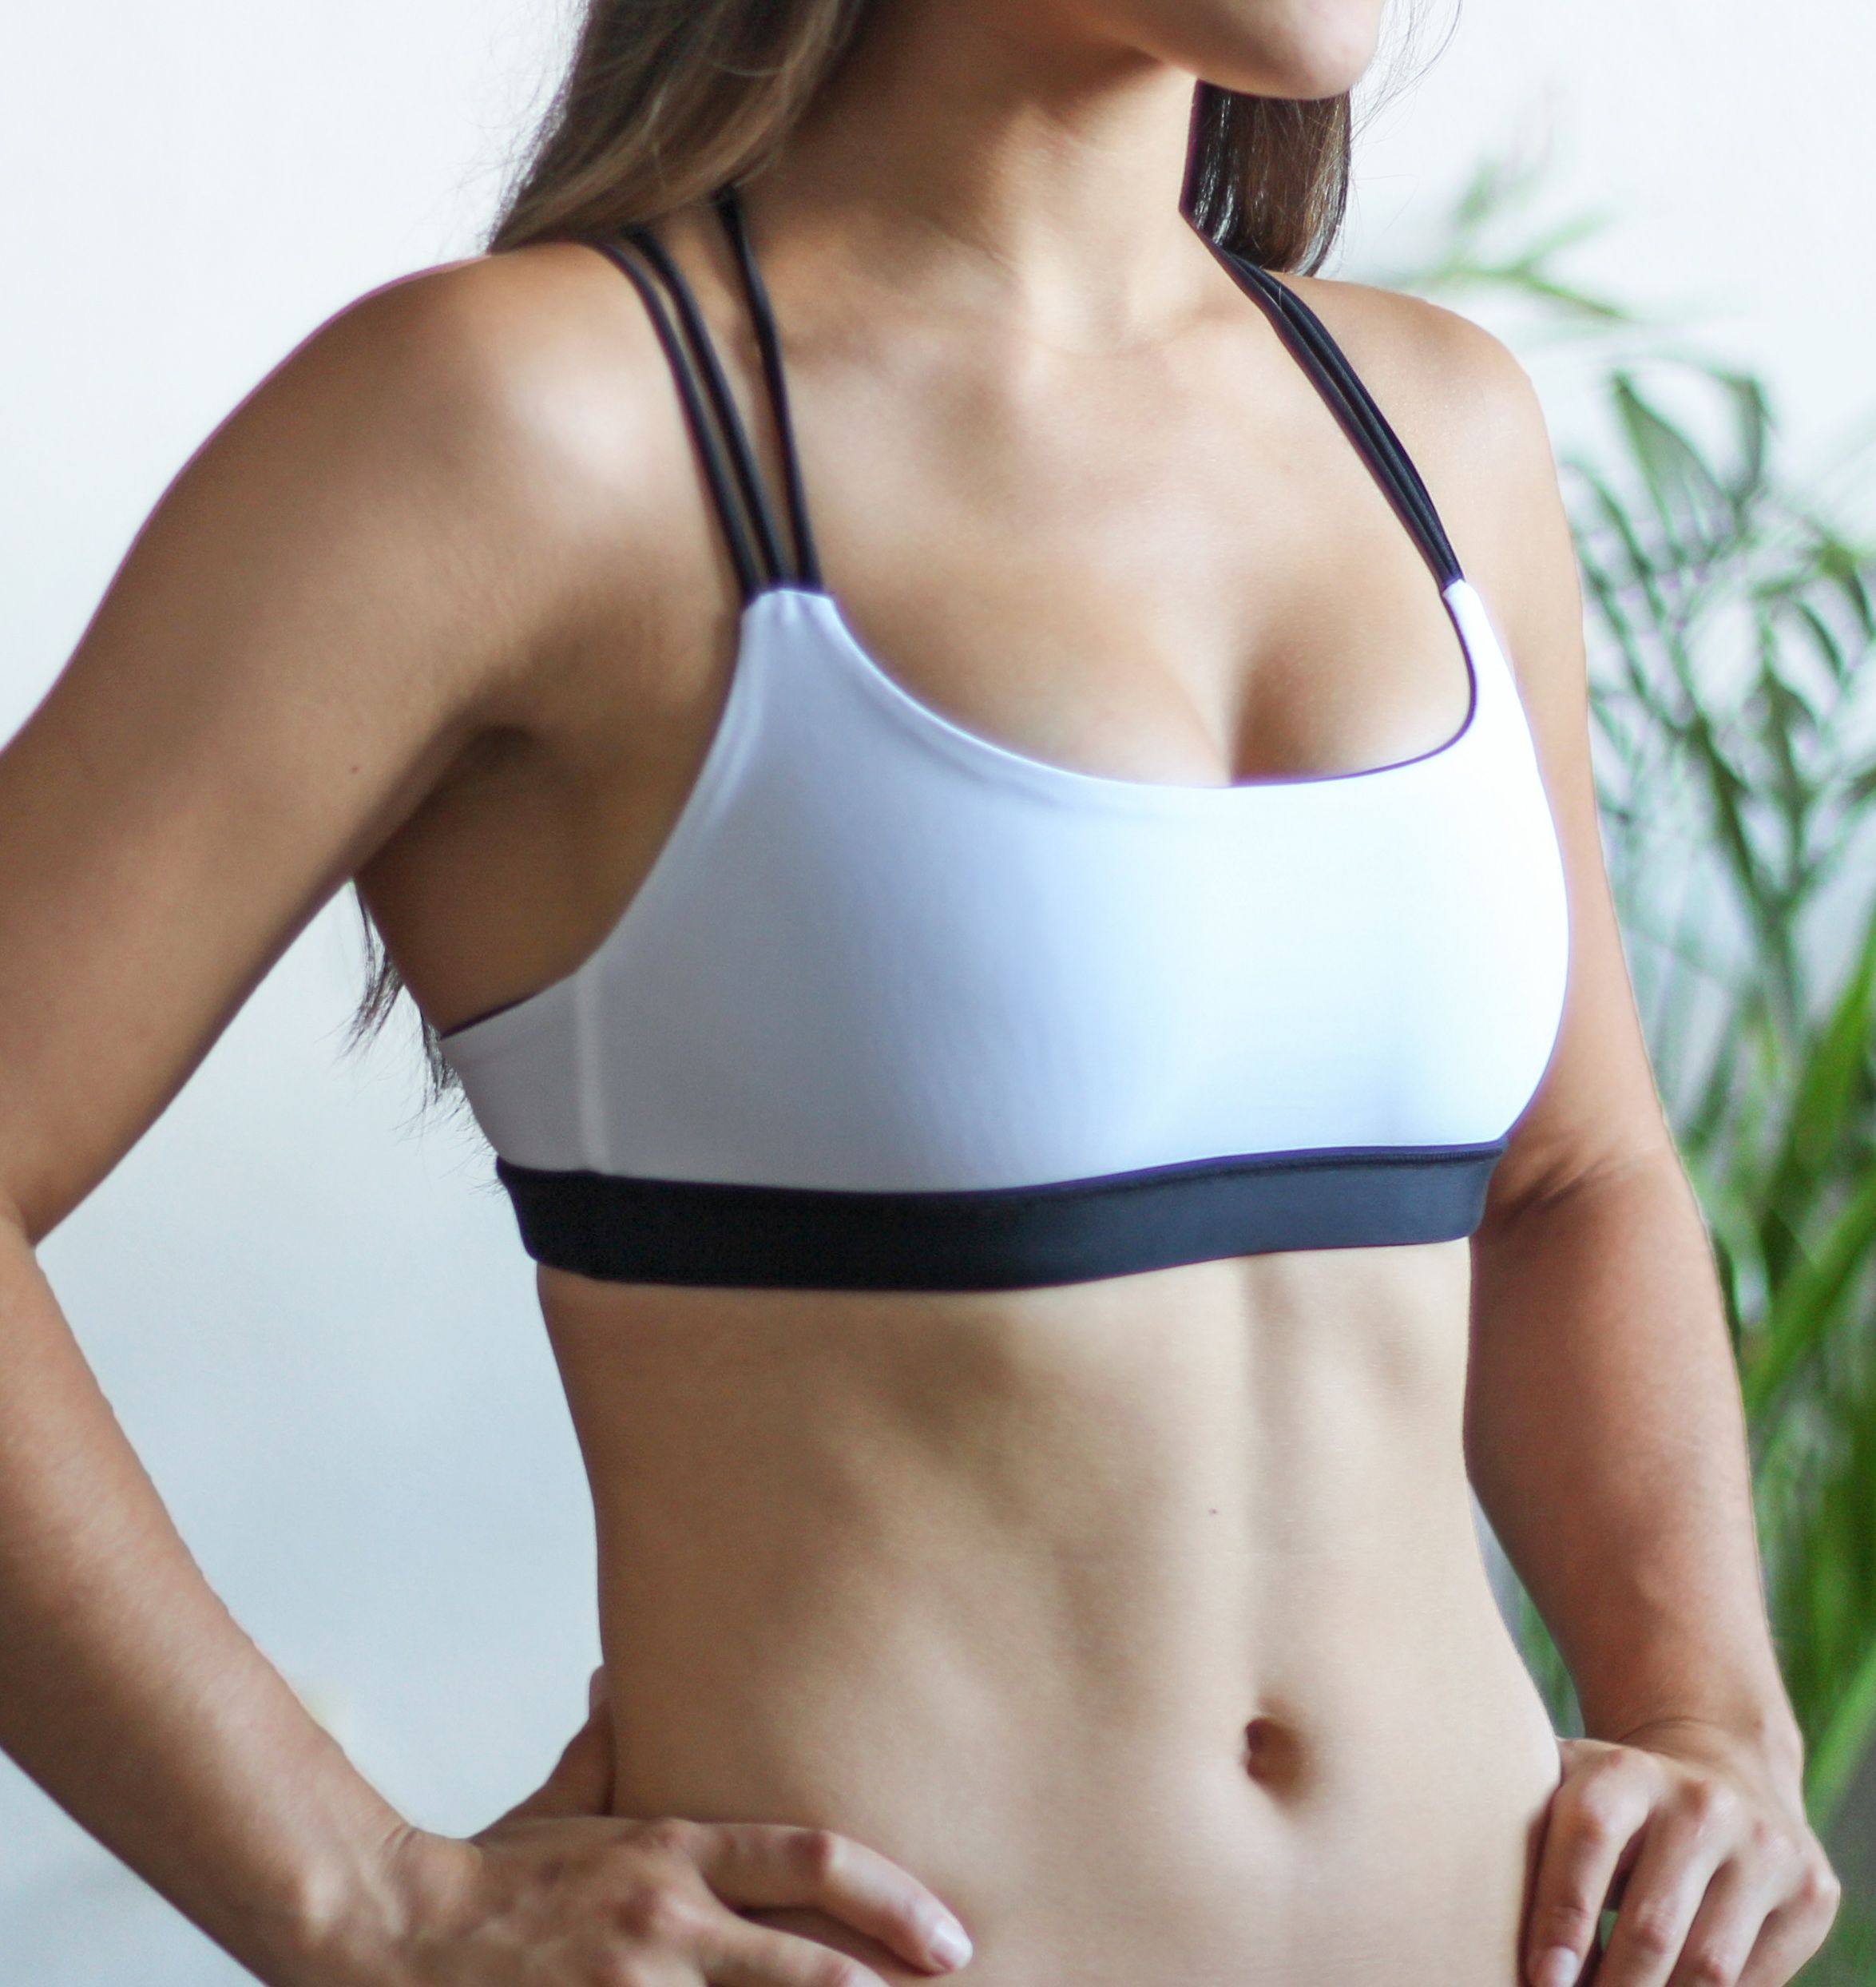 88f80398214e6 I love sports bras with cute backs!! Valleau Apparel makes the most  comfortable active wear